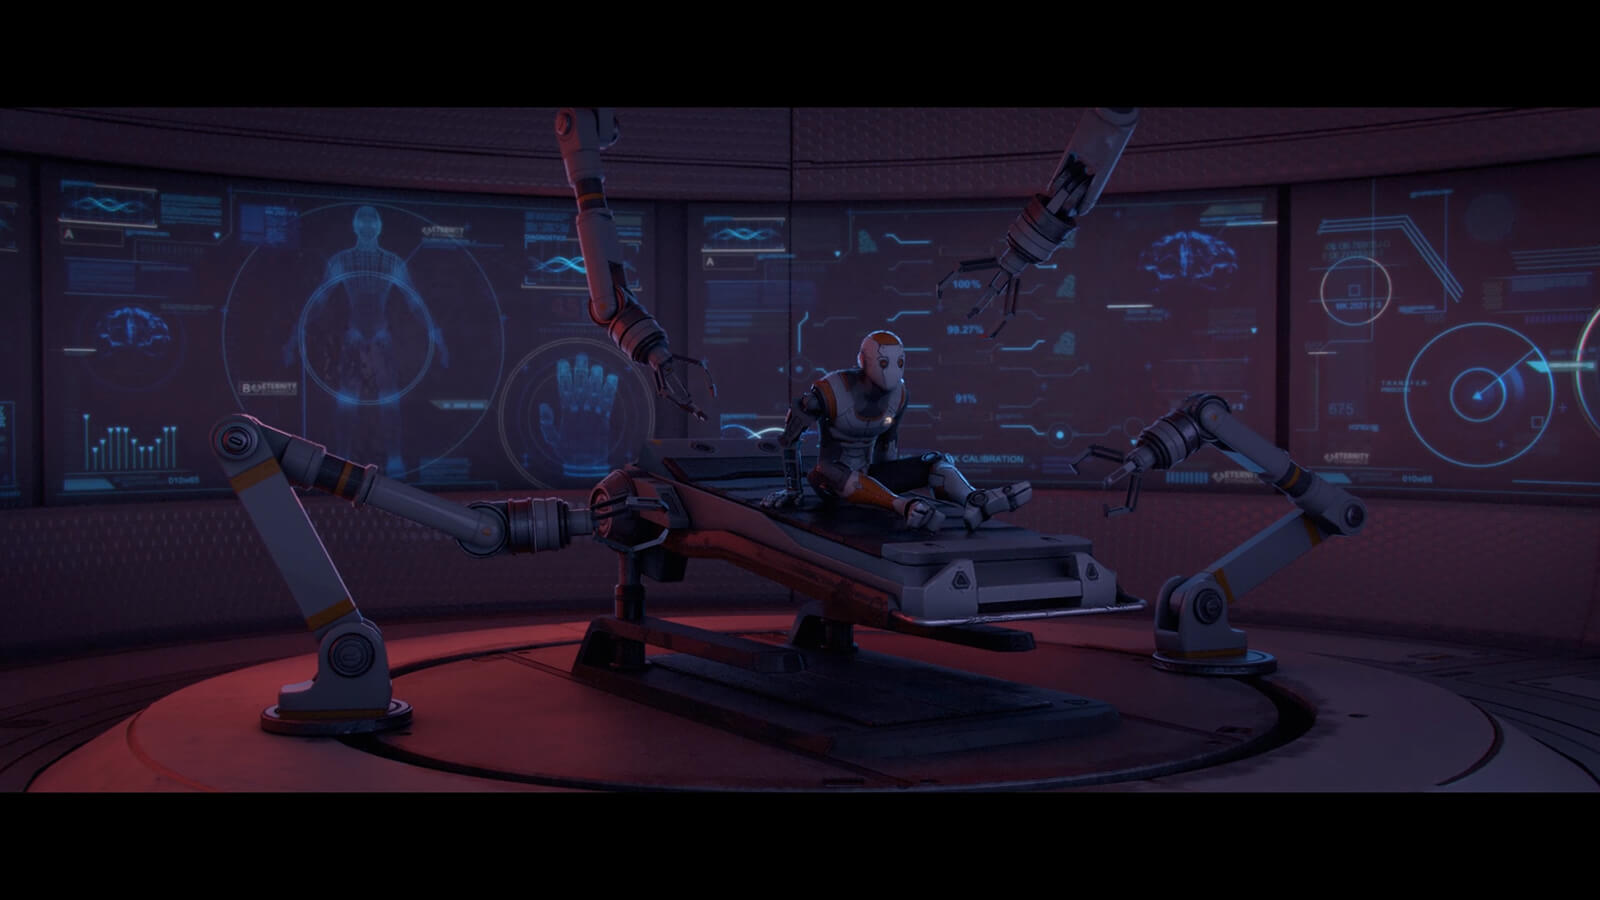 An android sits up in a medical bed surrounded by robotic arms.